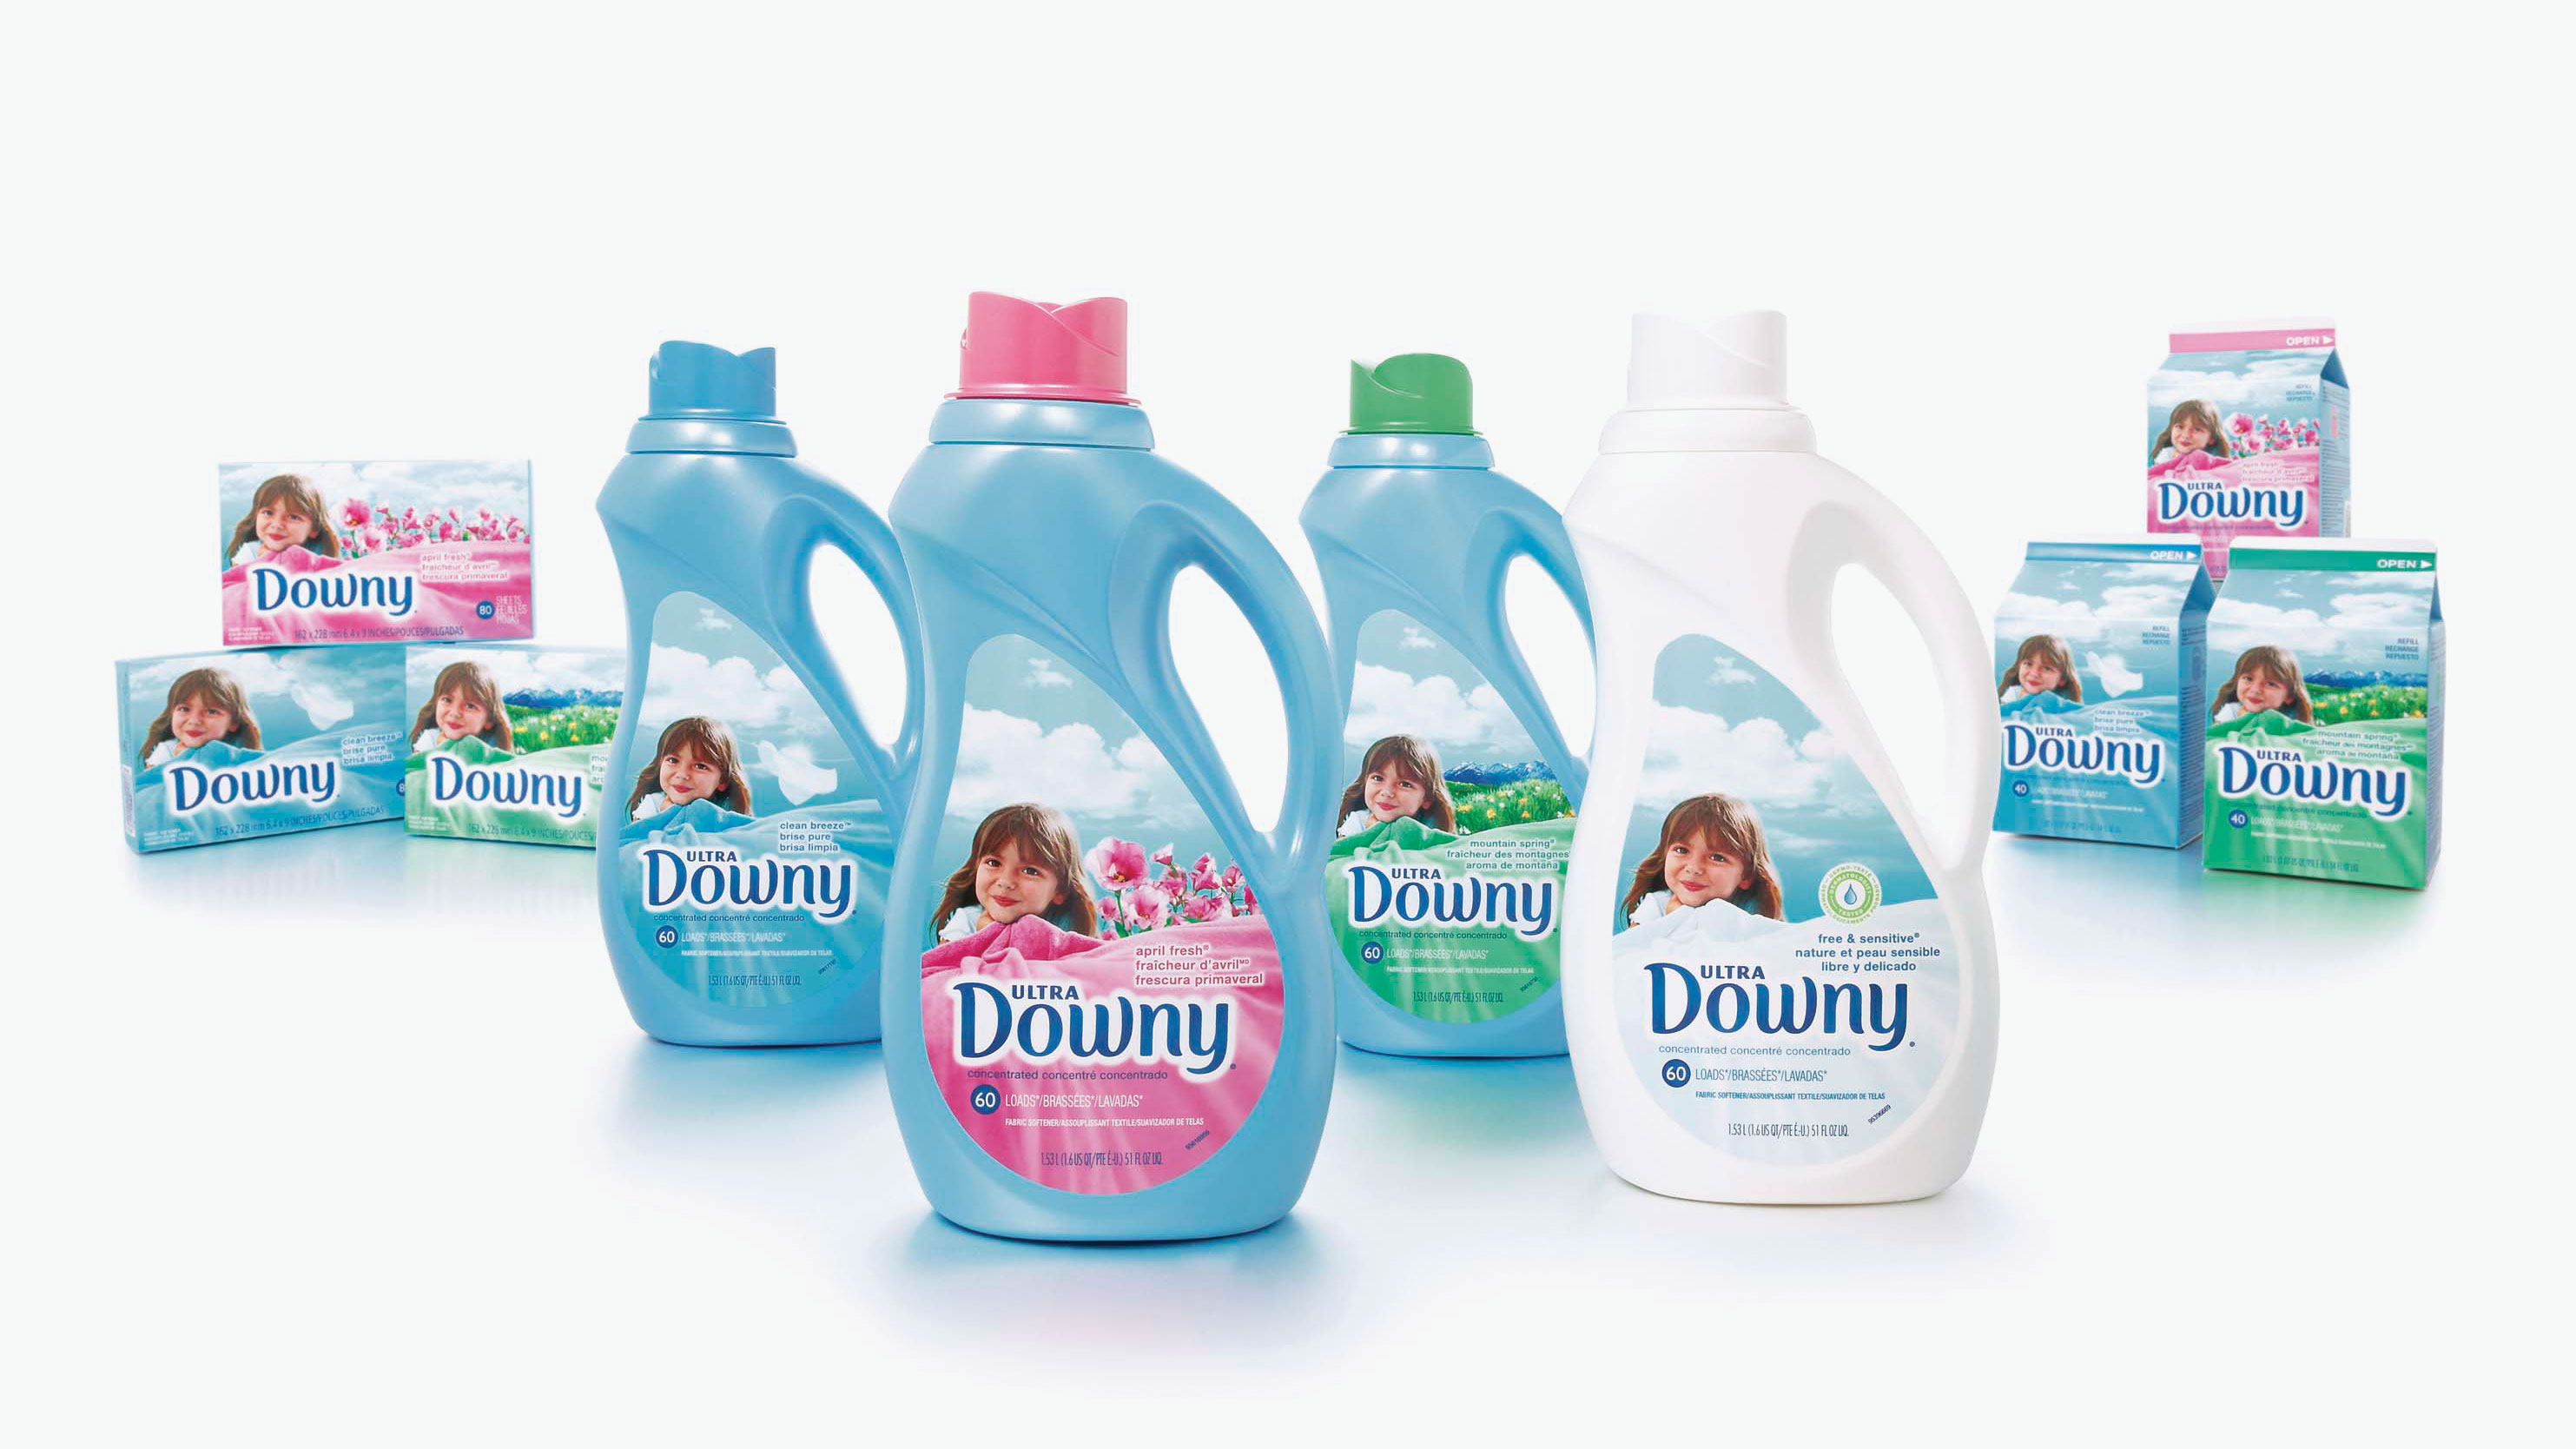 Downy packaging